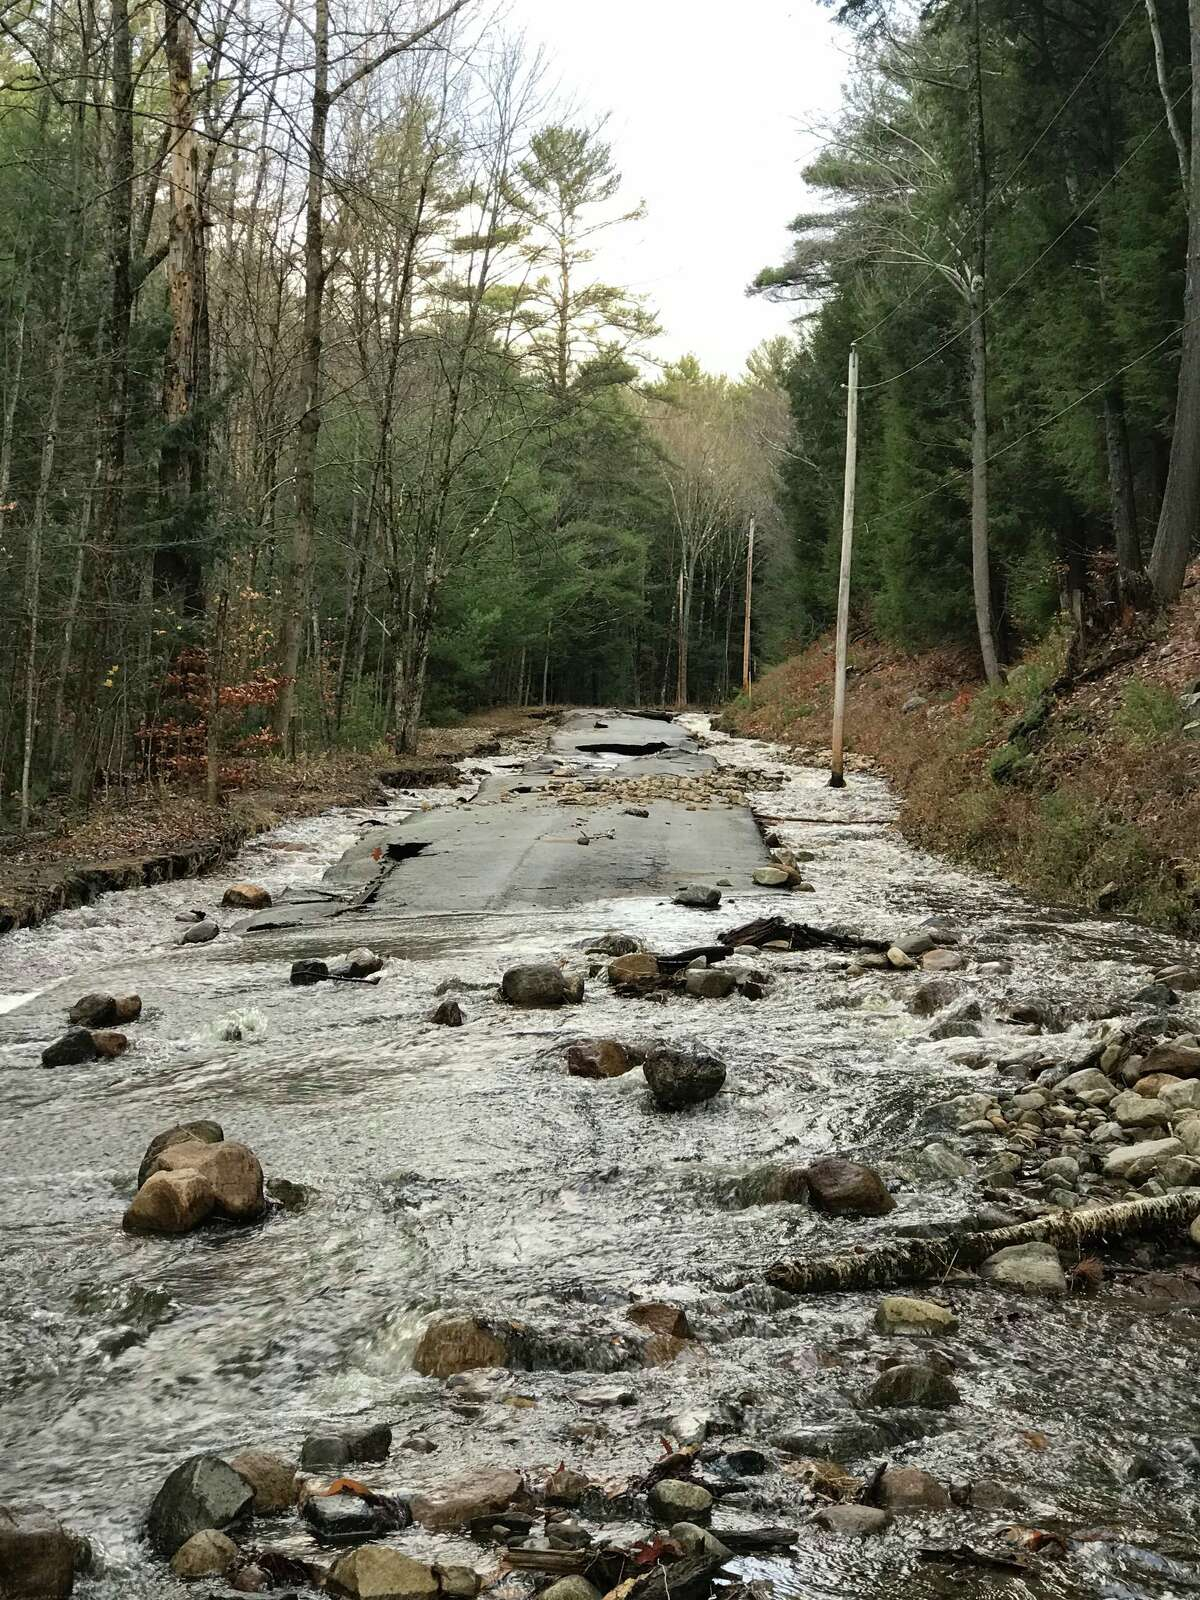 Sand Creek Road is washed out in the town of Day, according to the Saratoga County Office of Emergency Management.